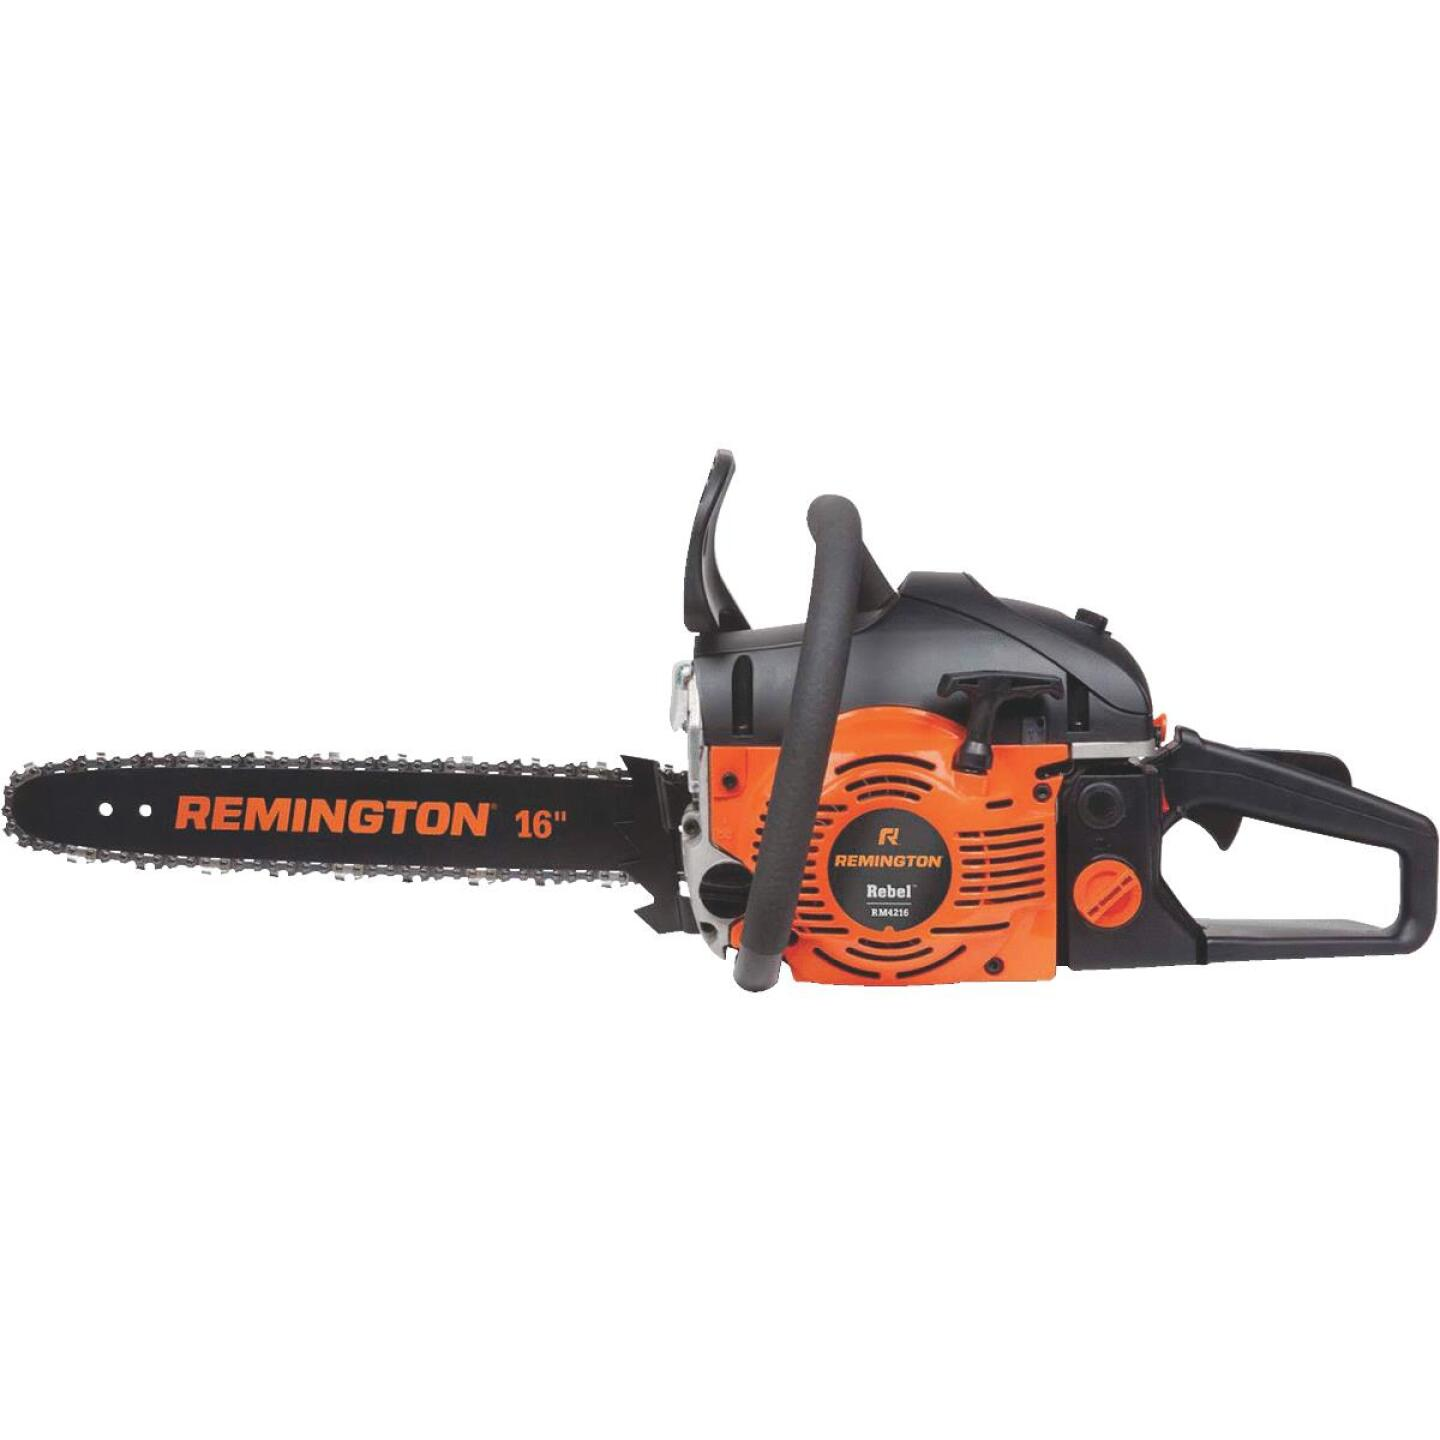 Remington RM4216CS Rebel 42cc 2-Cycle 16 In. Gas Chainsaw Image 1